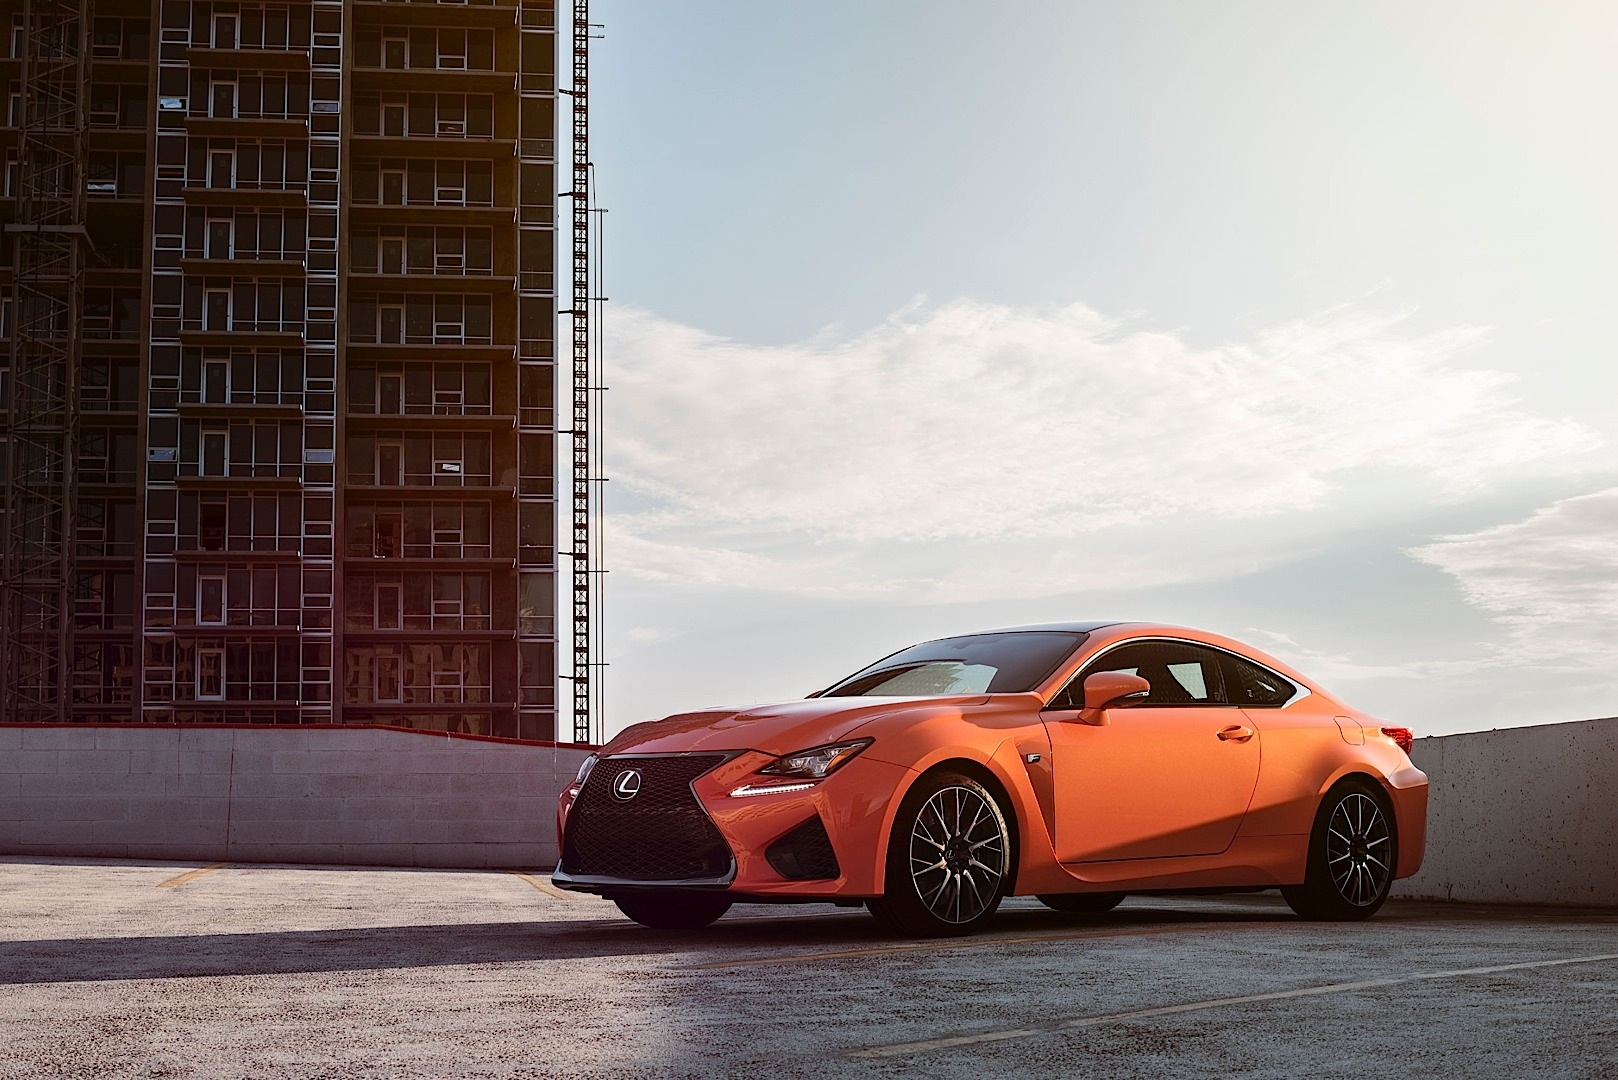 Right Price Auto Sales >> Lexus RC F Makes 467 HP - Full Engine Specs and Price Revealed - autoevolution